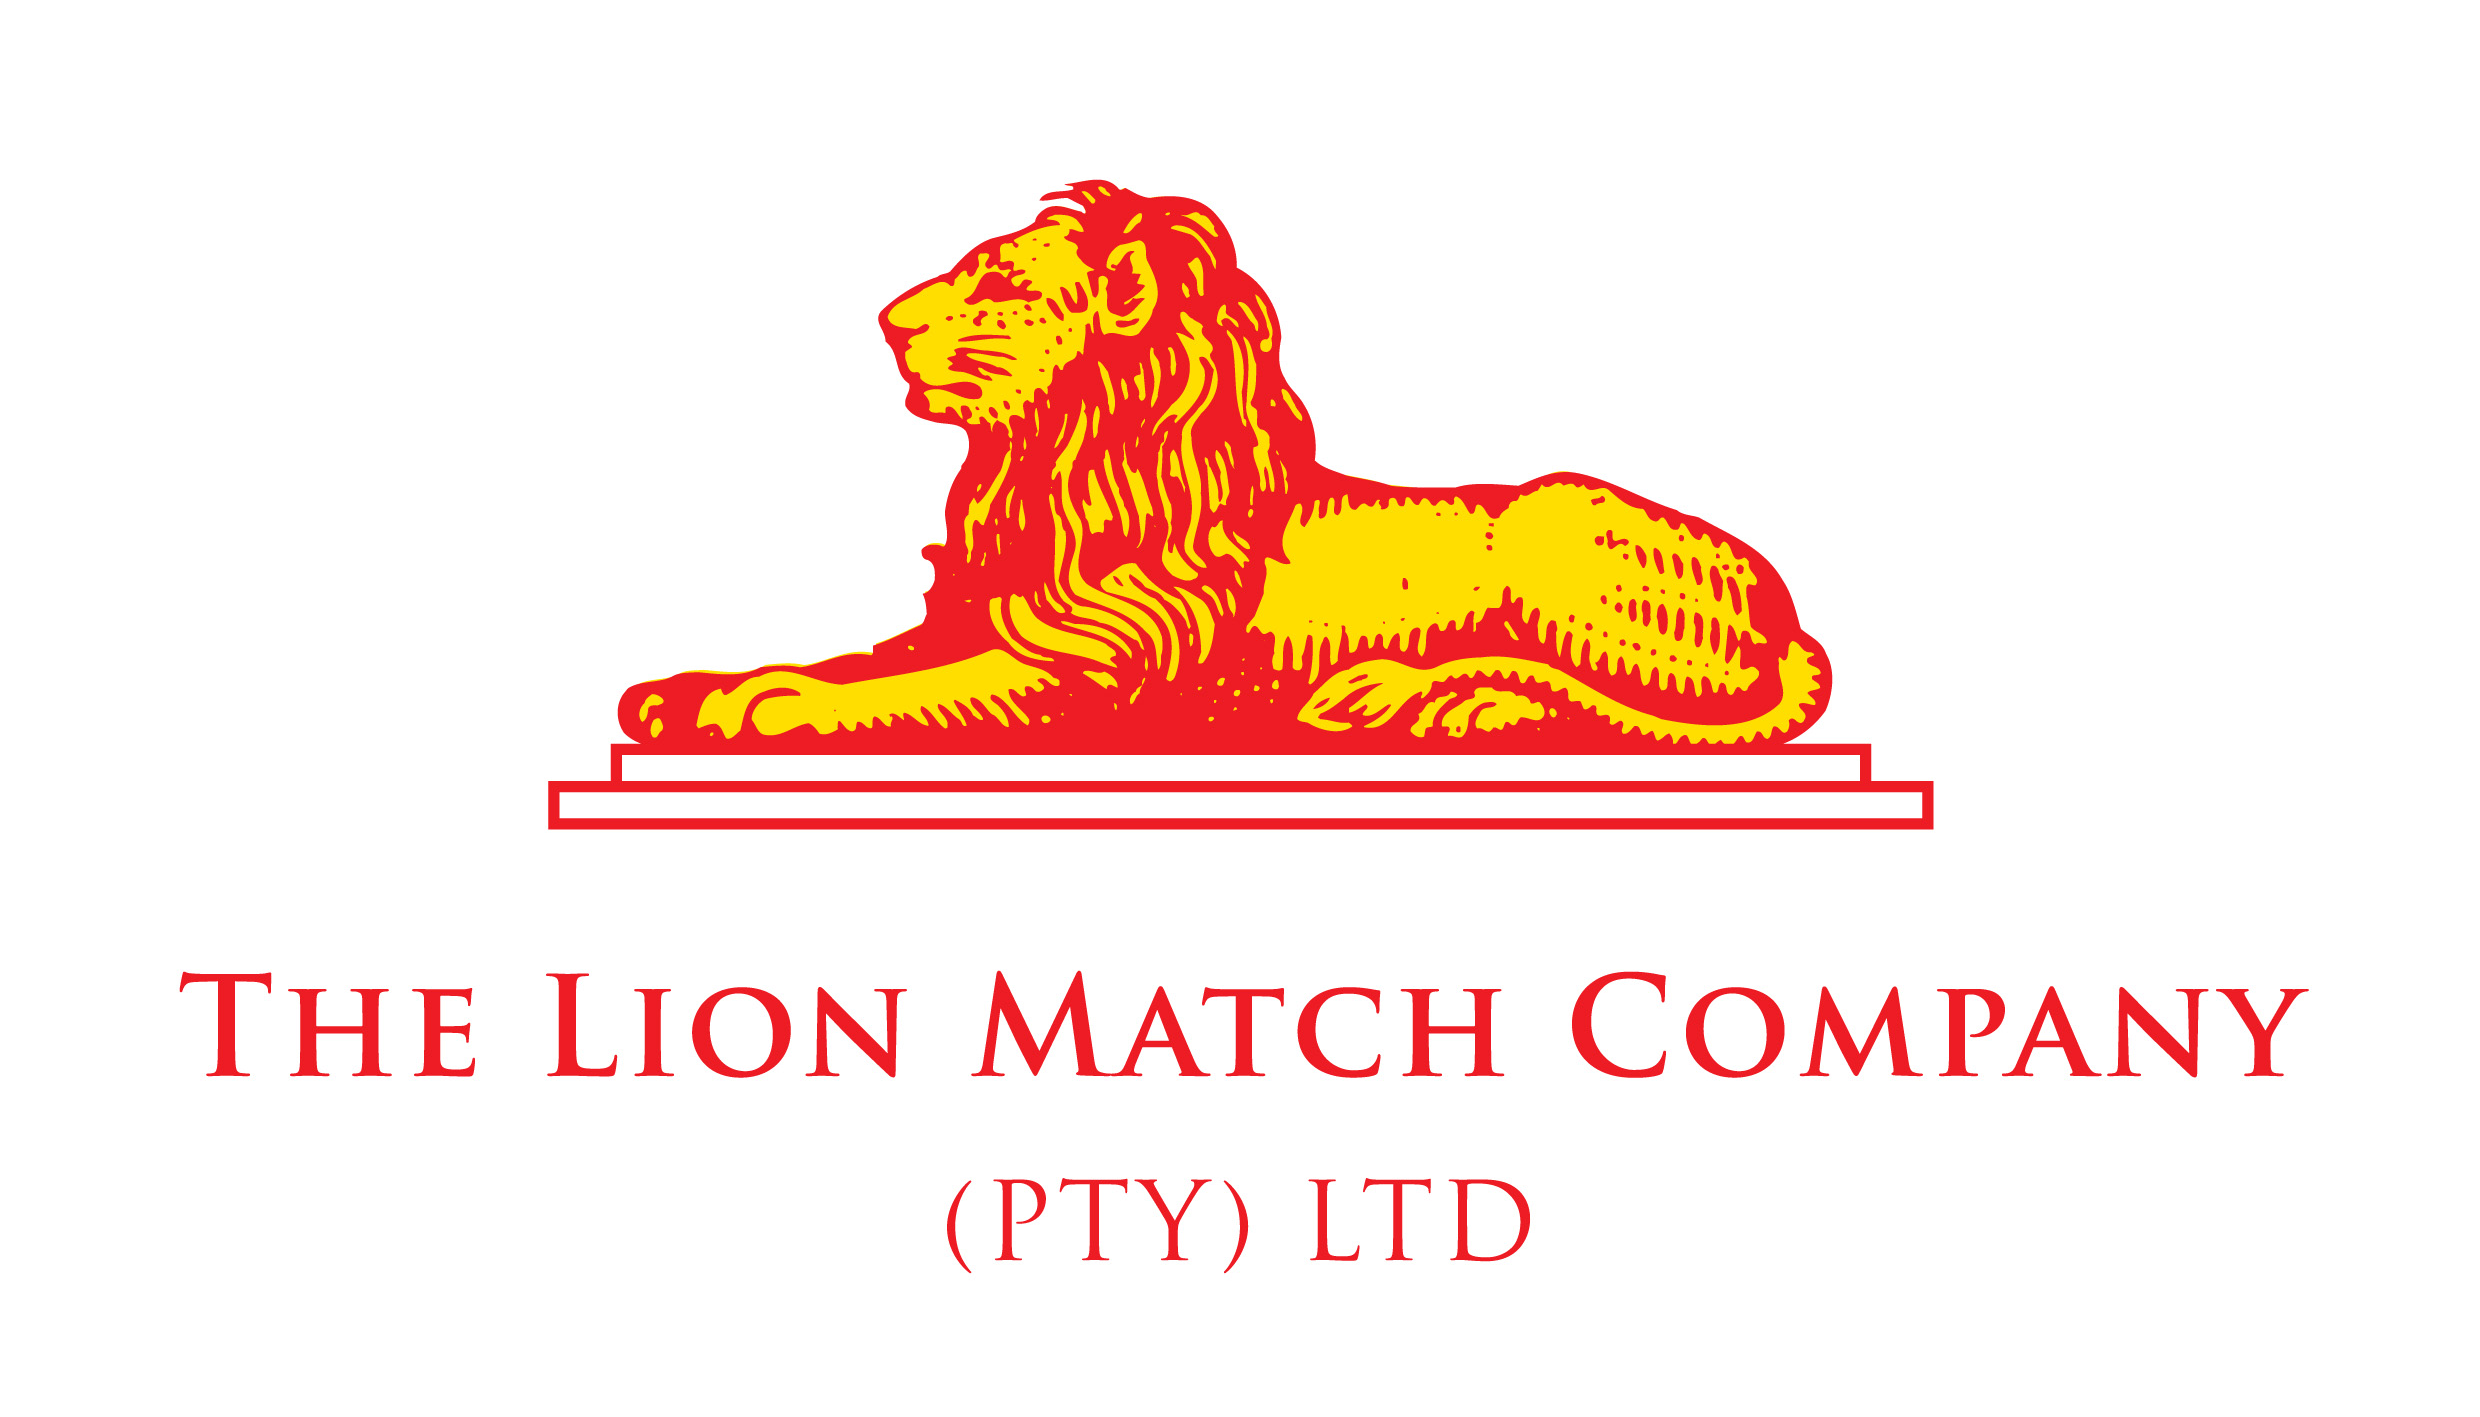 Lion Match Company